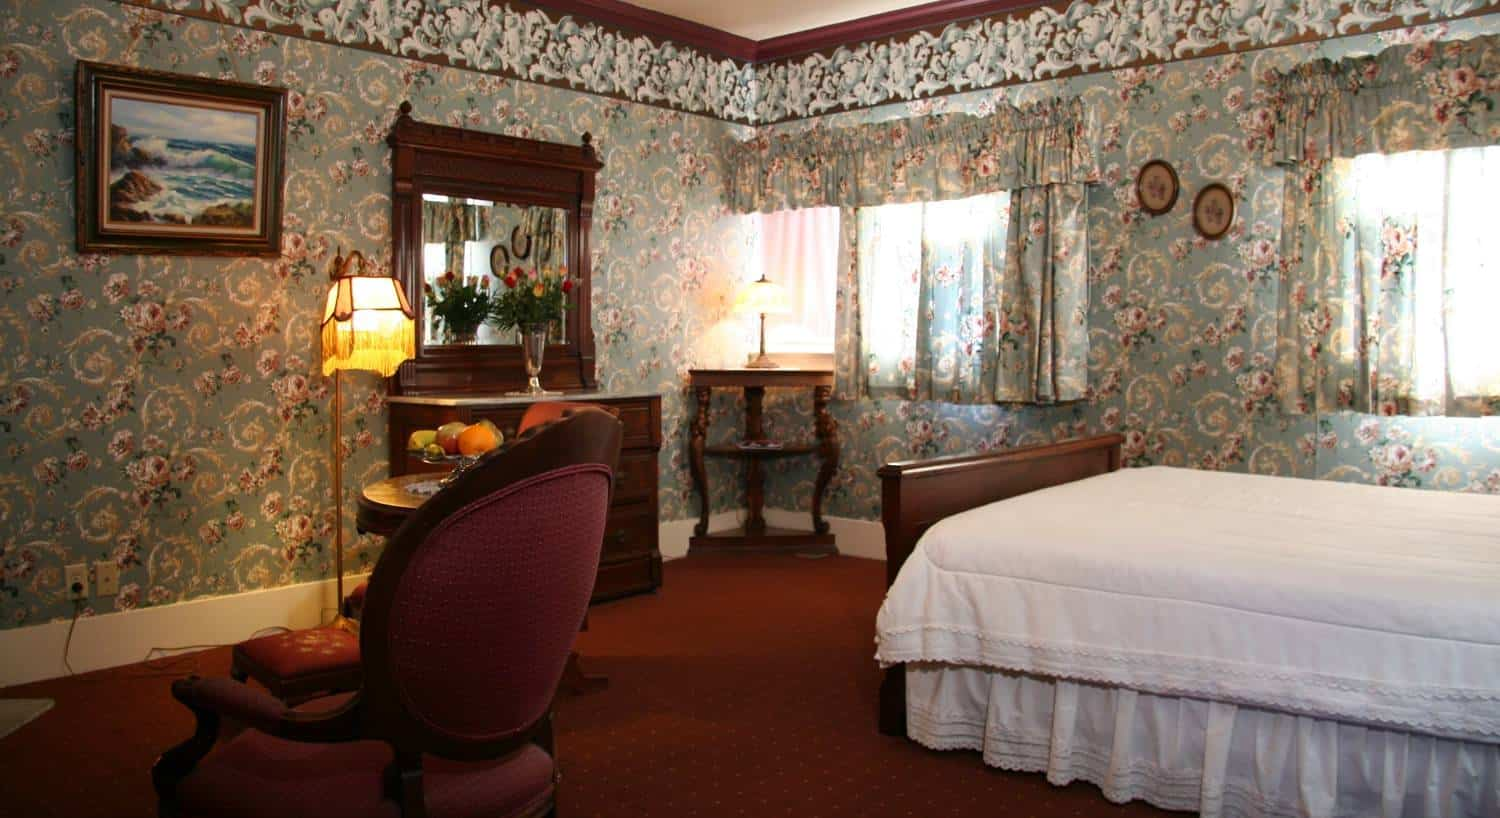 Mahogany guest room with carpeting, blue floral walls, two windows, dresser with mirror and bed with white bedding